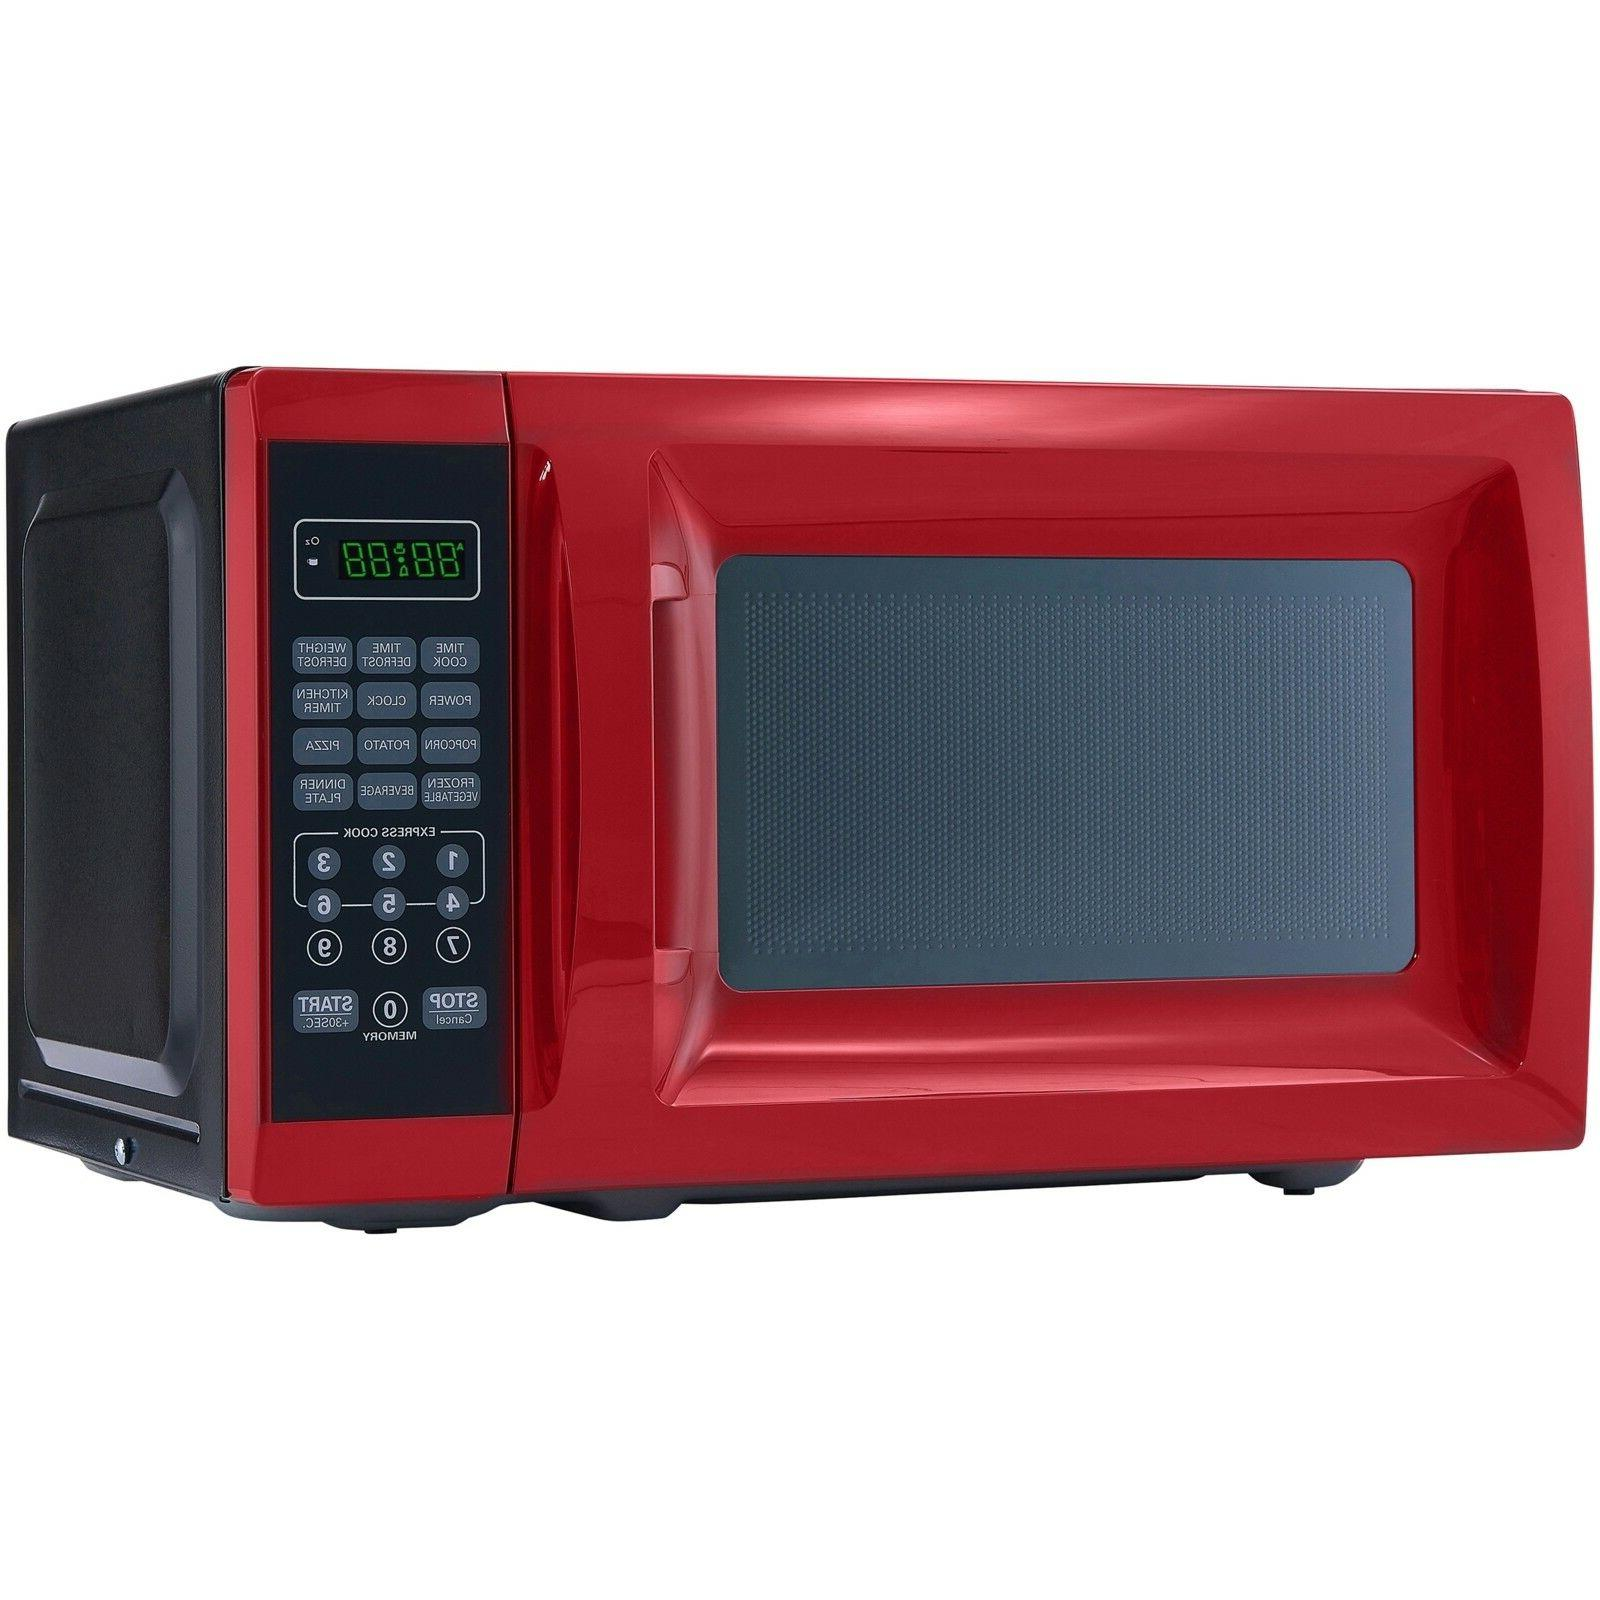 Microwave Removable Glass Turntable, Red